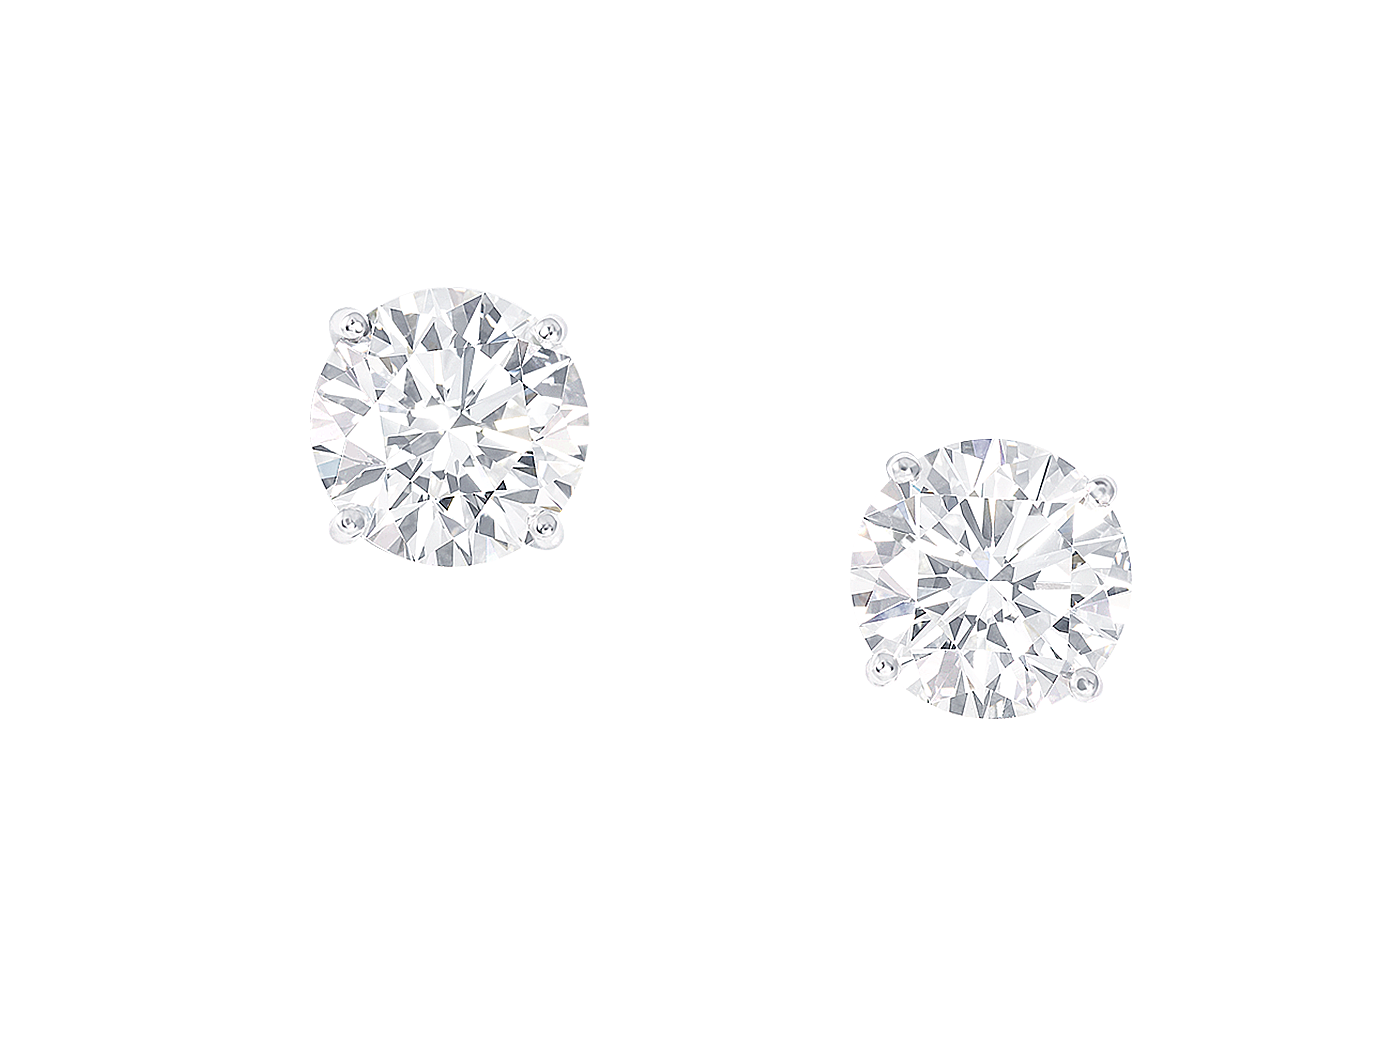 Diamond Earring Png 2 » PNG Image #118928.